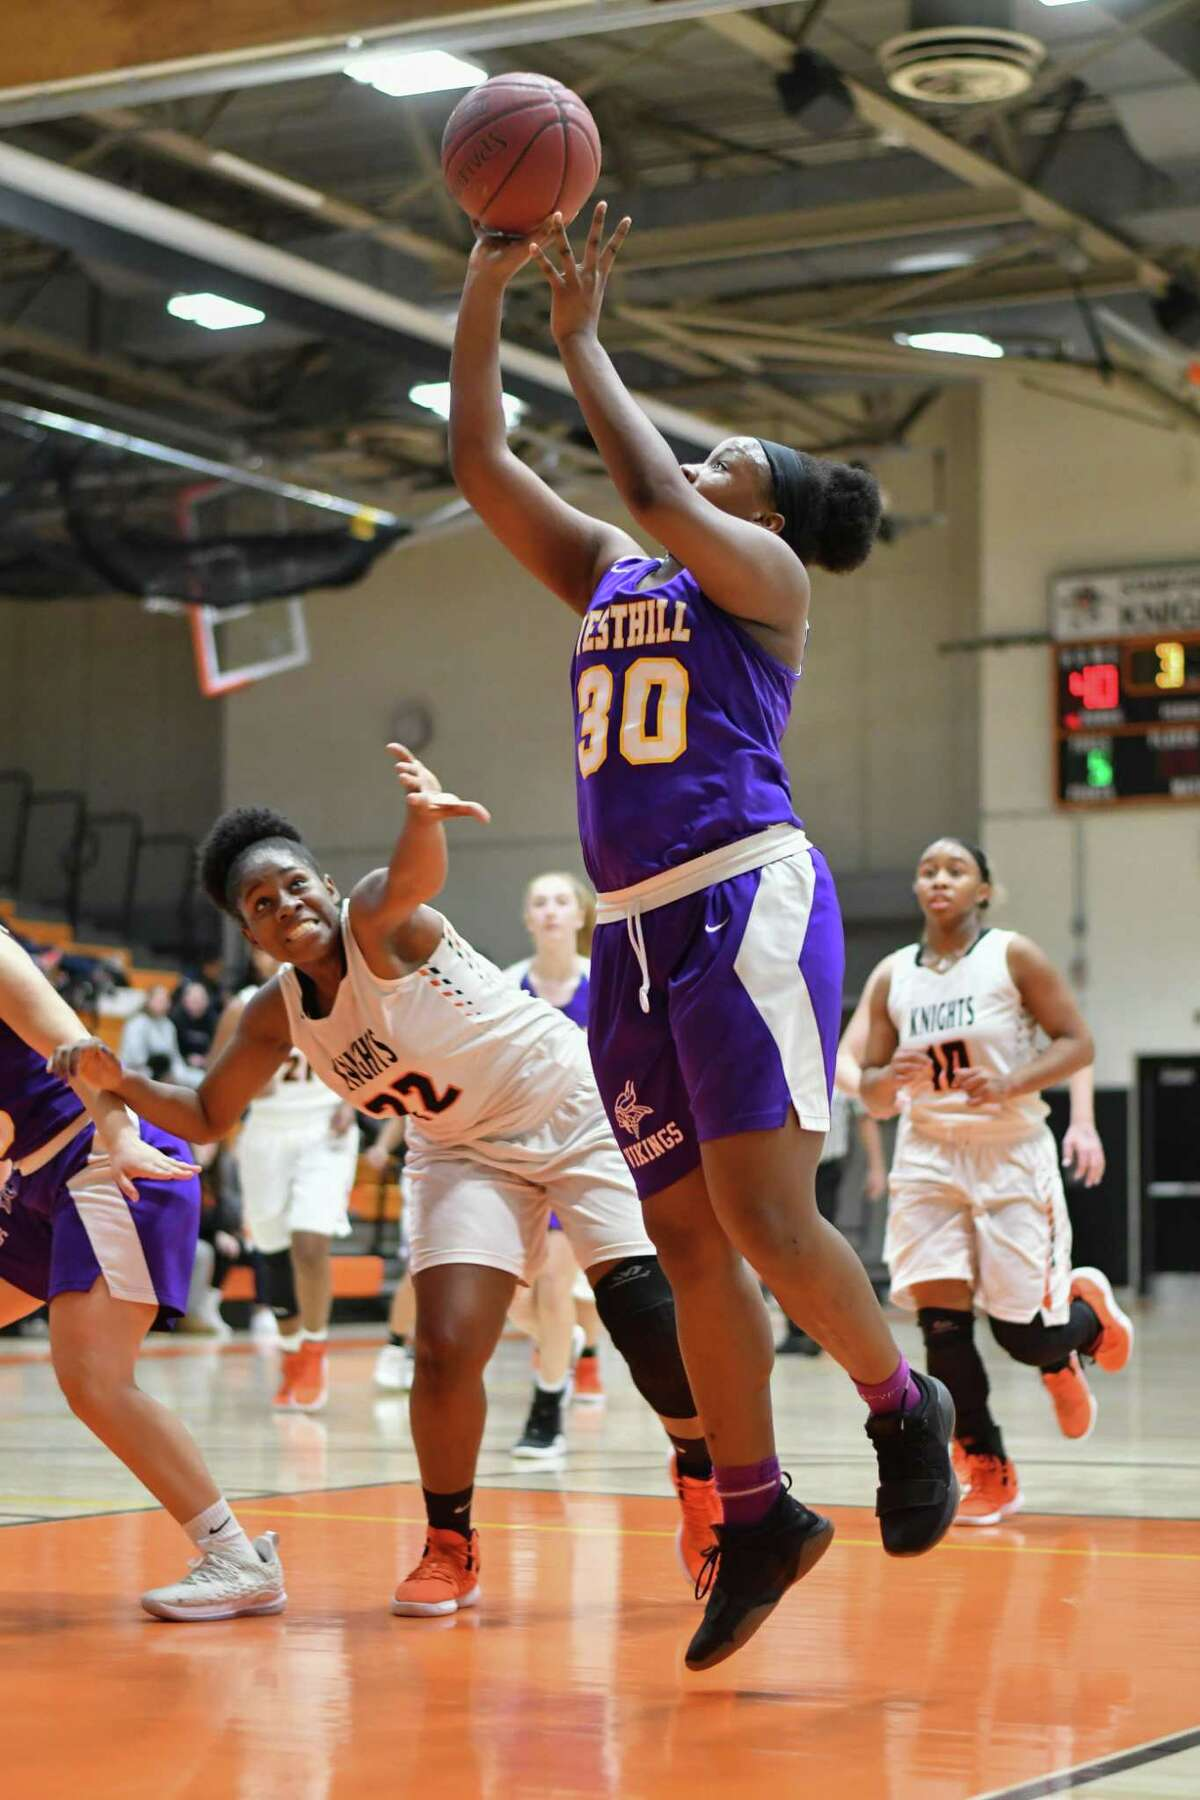 Girls high school basketball action from the Kuczo Holiday Classic played on Thursday December 27, 2018 at Stamford High School in Stamford, Connecticut.